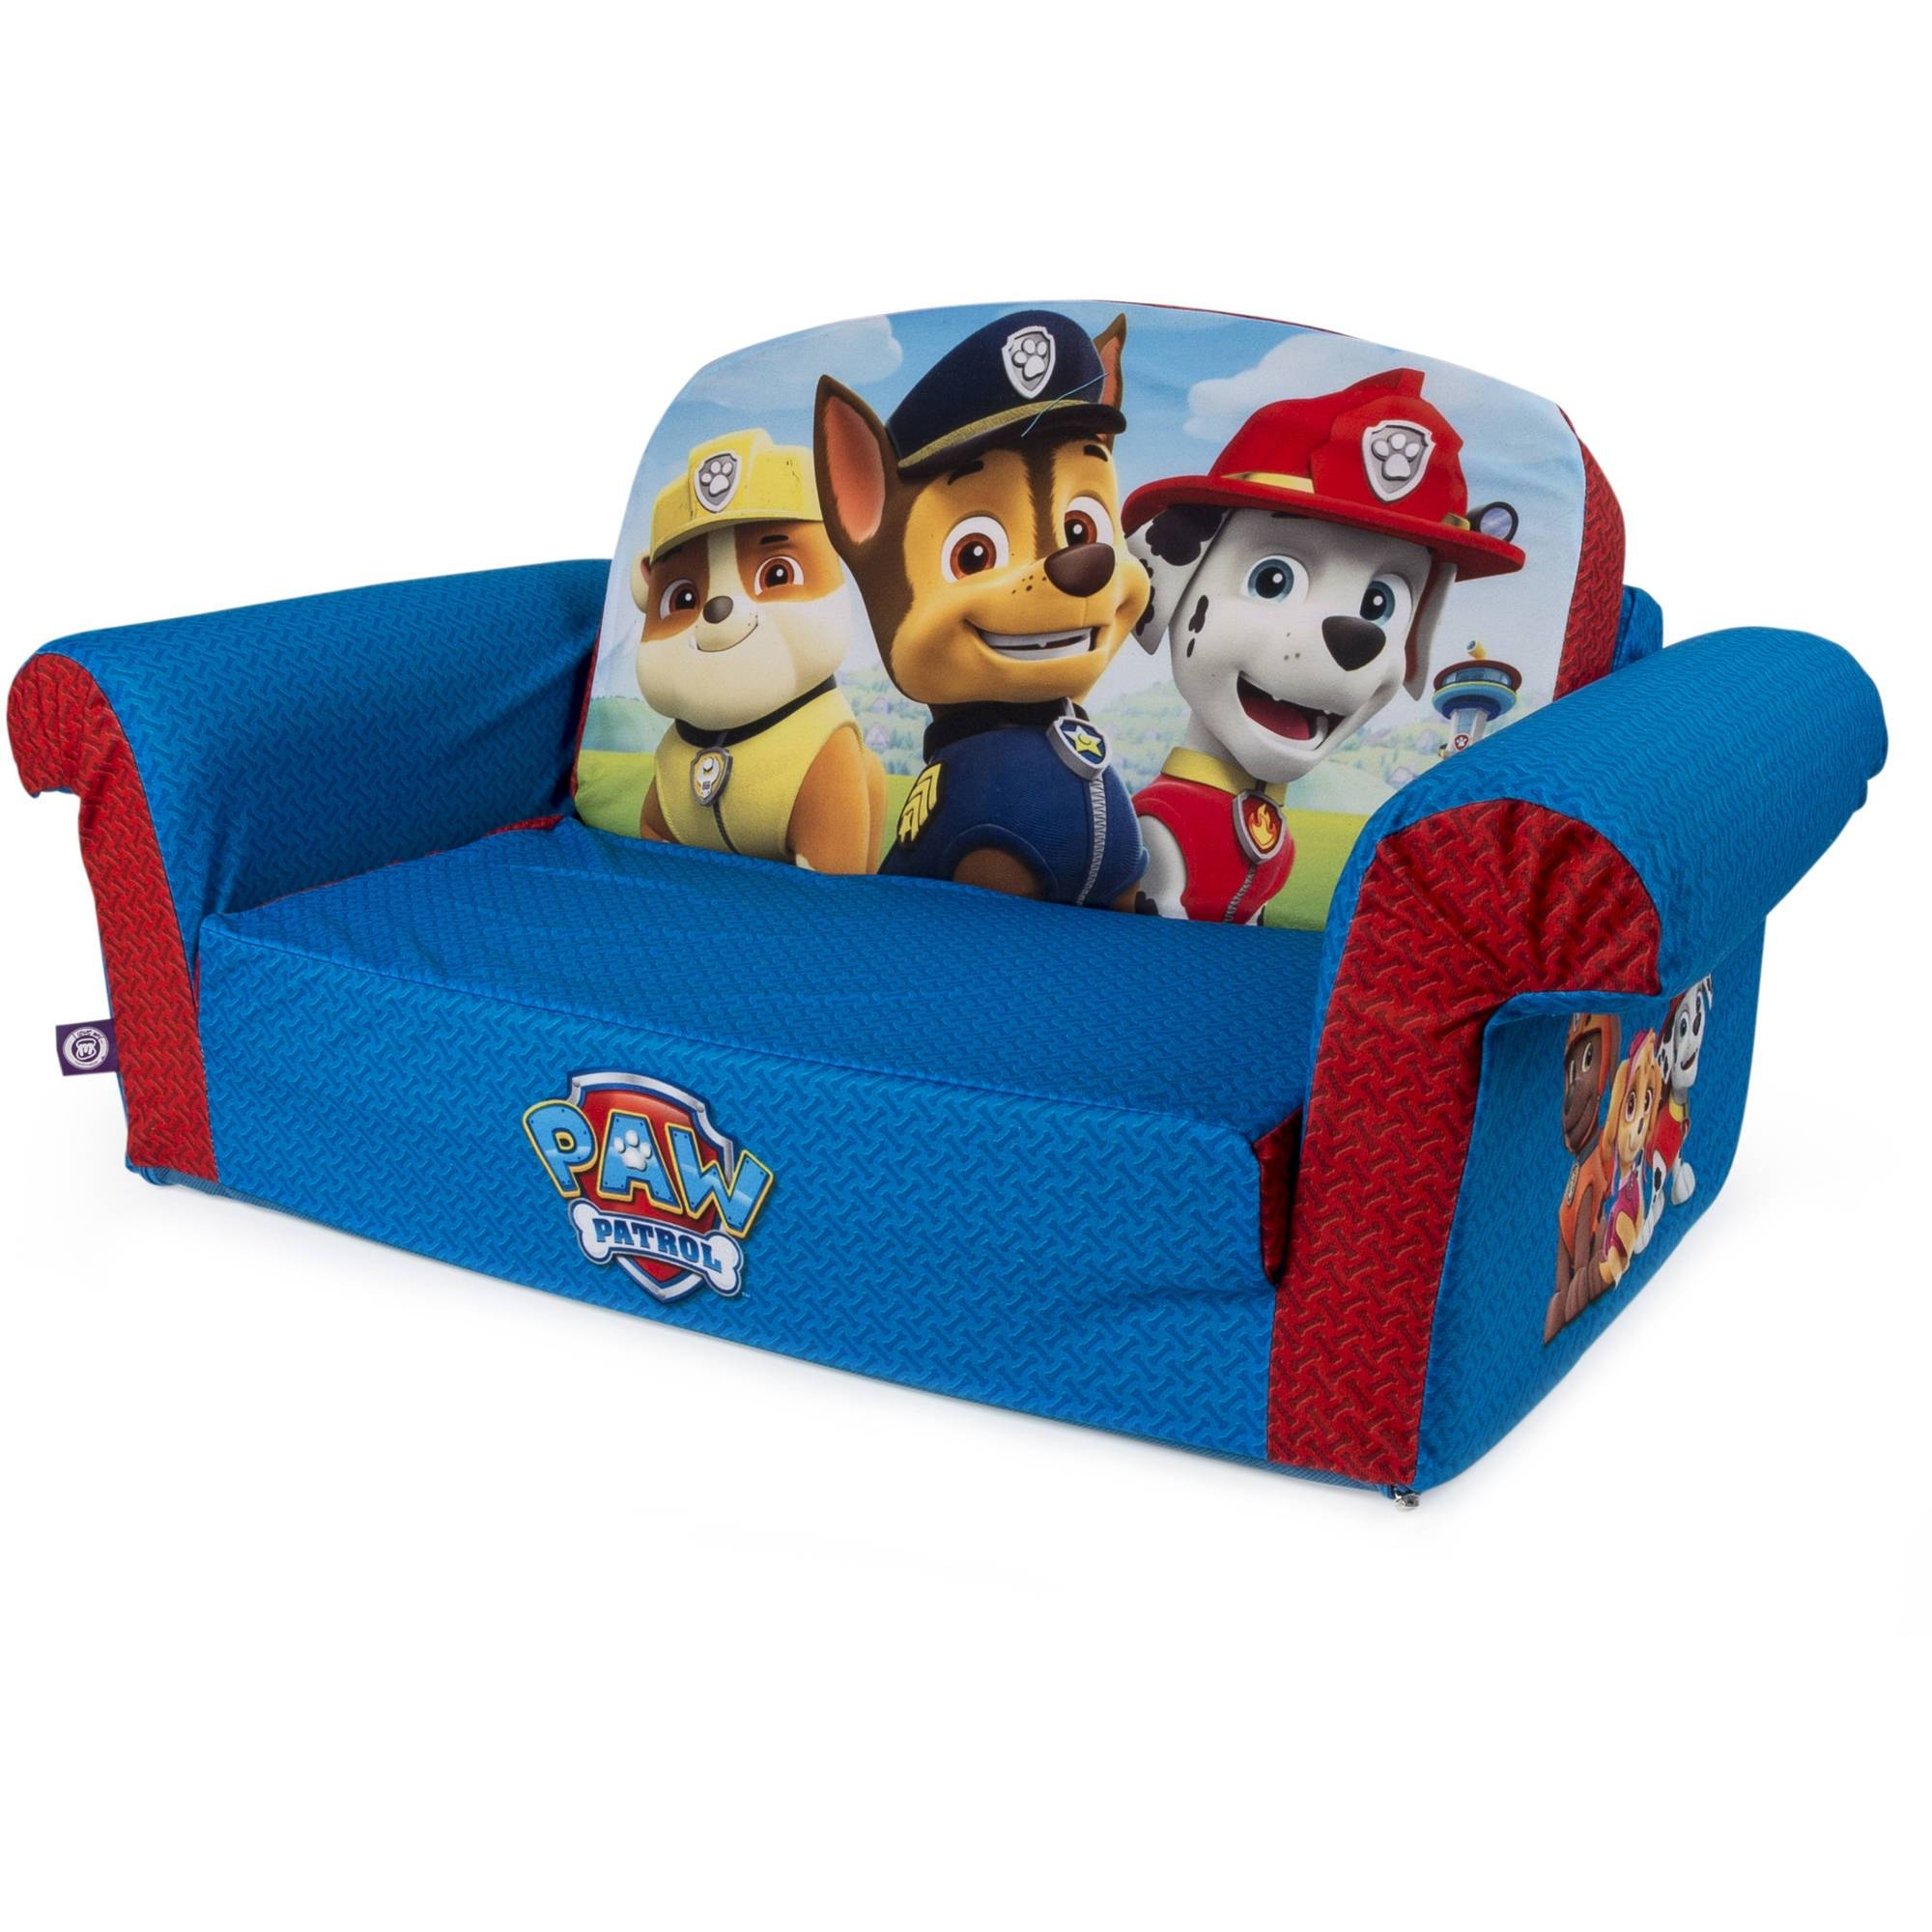 Marshmallow Furniture, Children's 2 In 1 Flip Open Foam Sofa for Flip Out Sofa Bed Toddlers (Image 15 of 30)